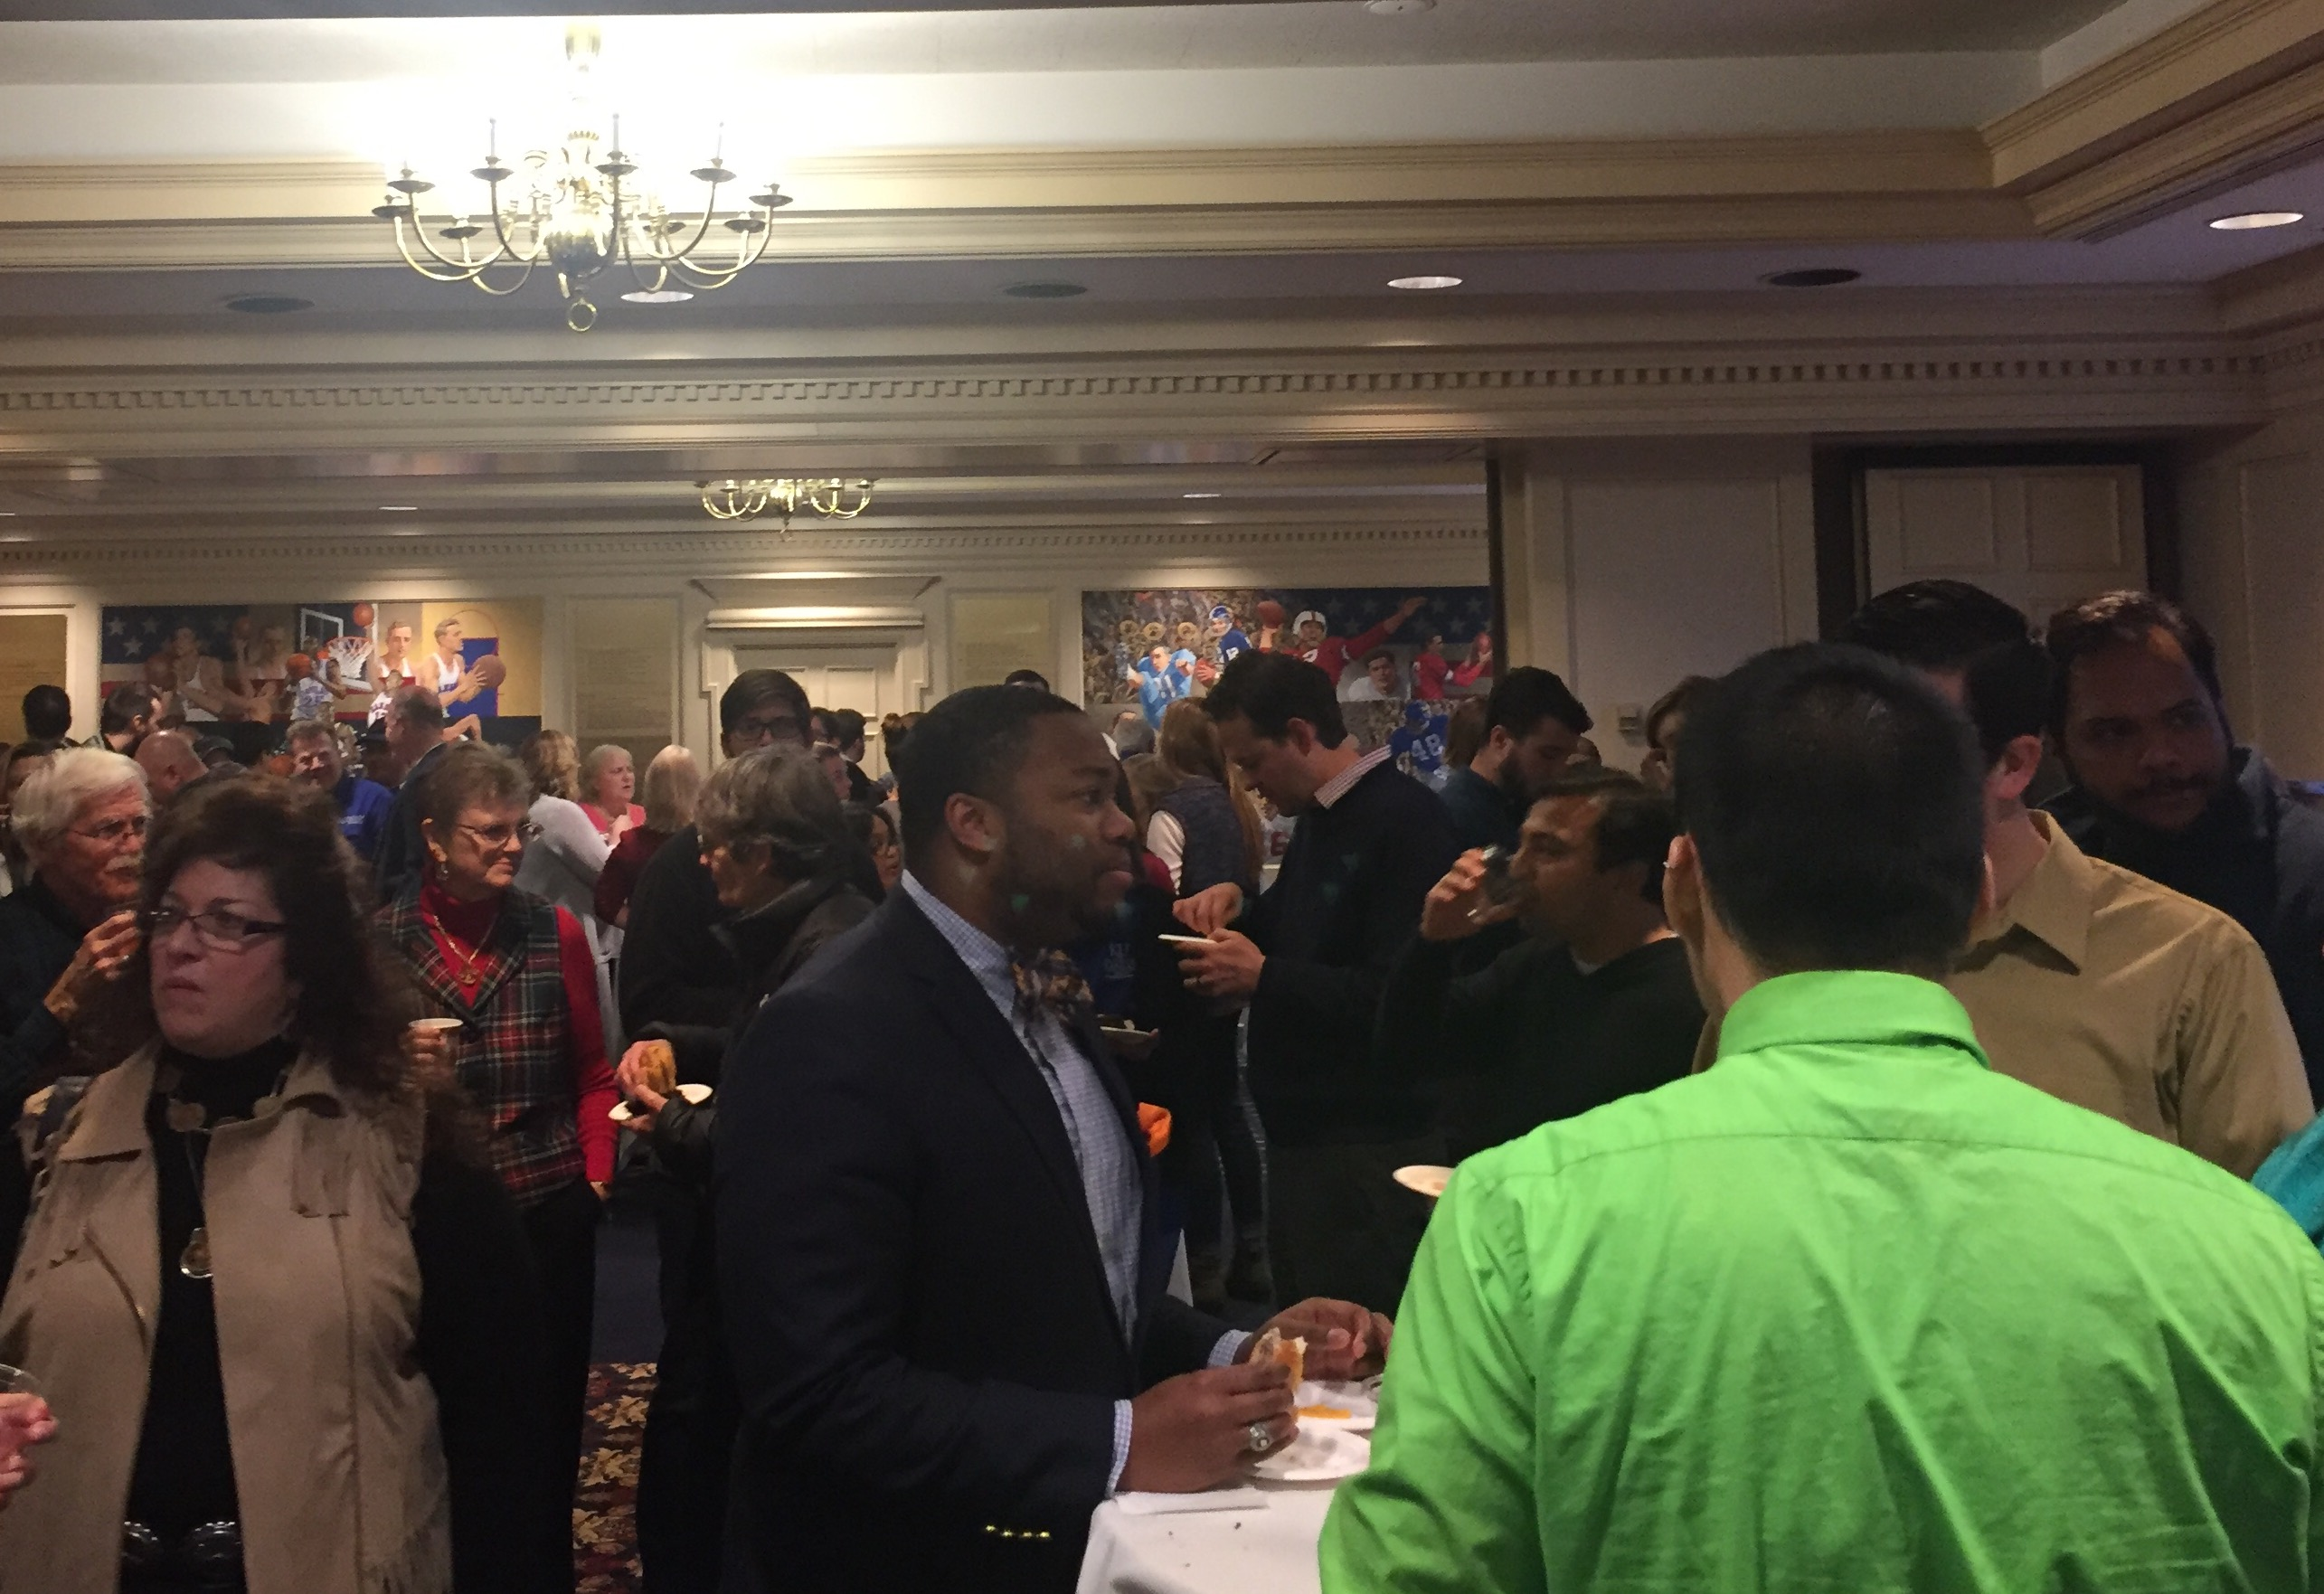 Staff and Faculty members mingle at the reception